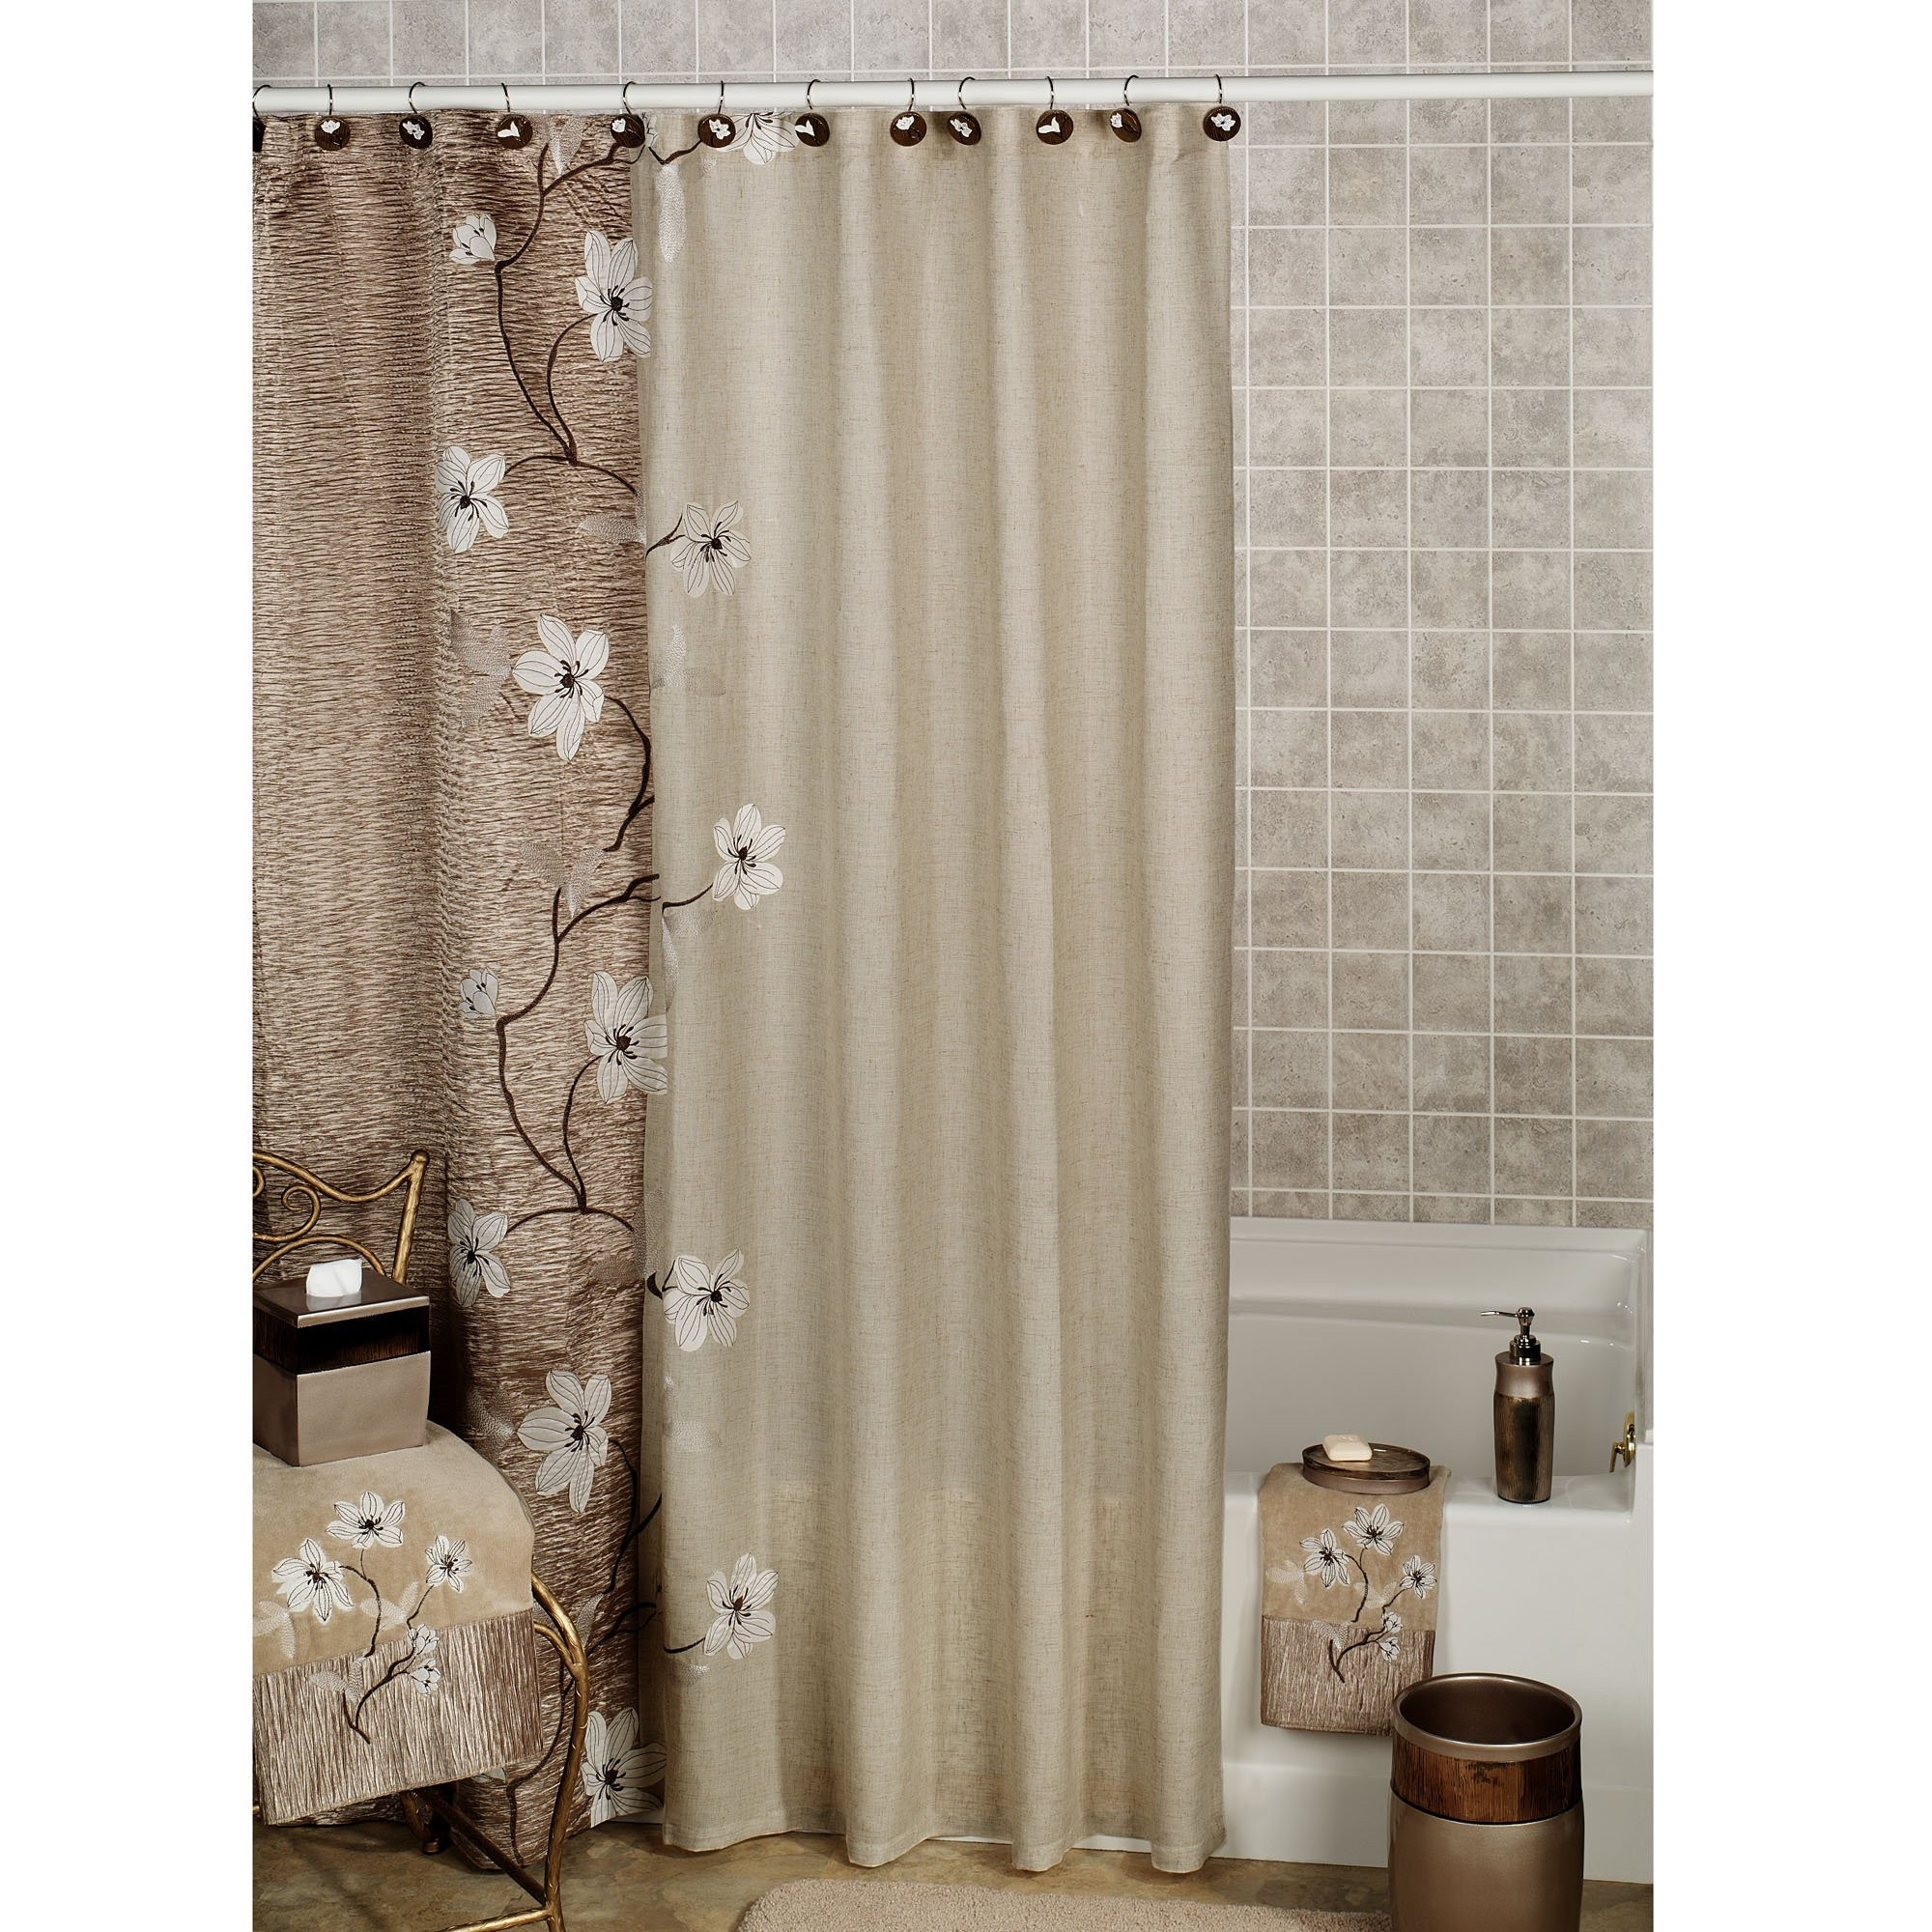 Matching Shower Curtain And Window Valance Shower